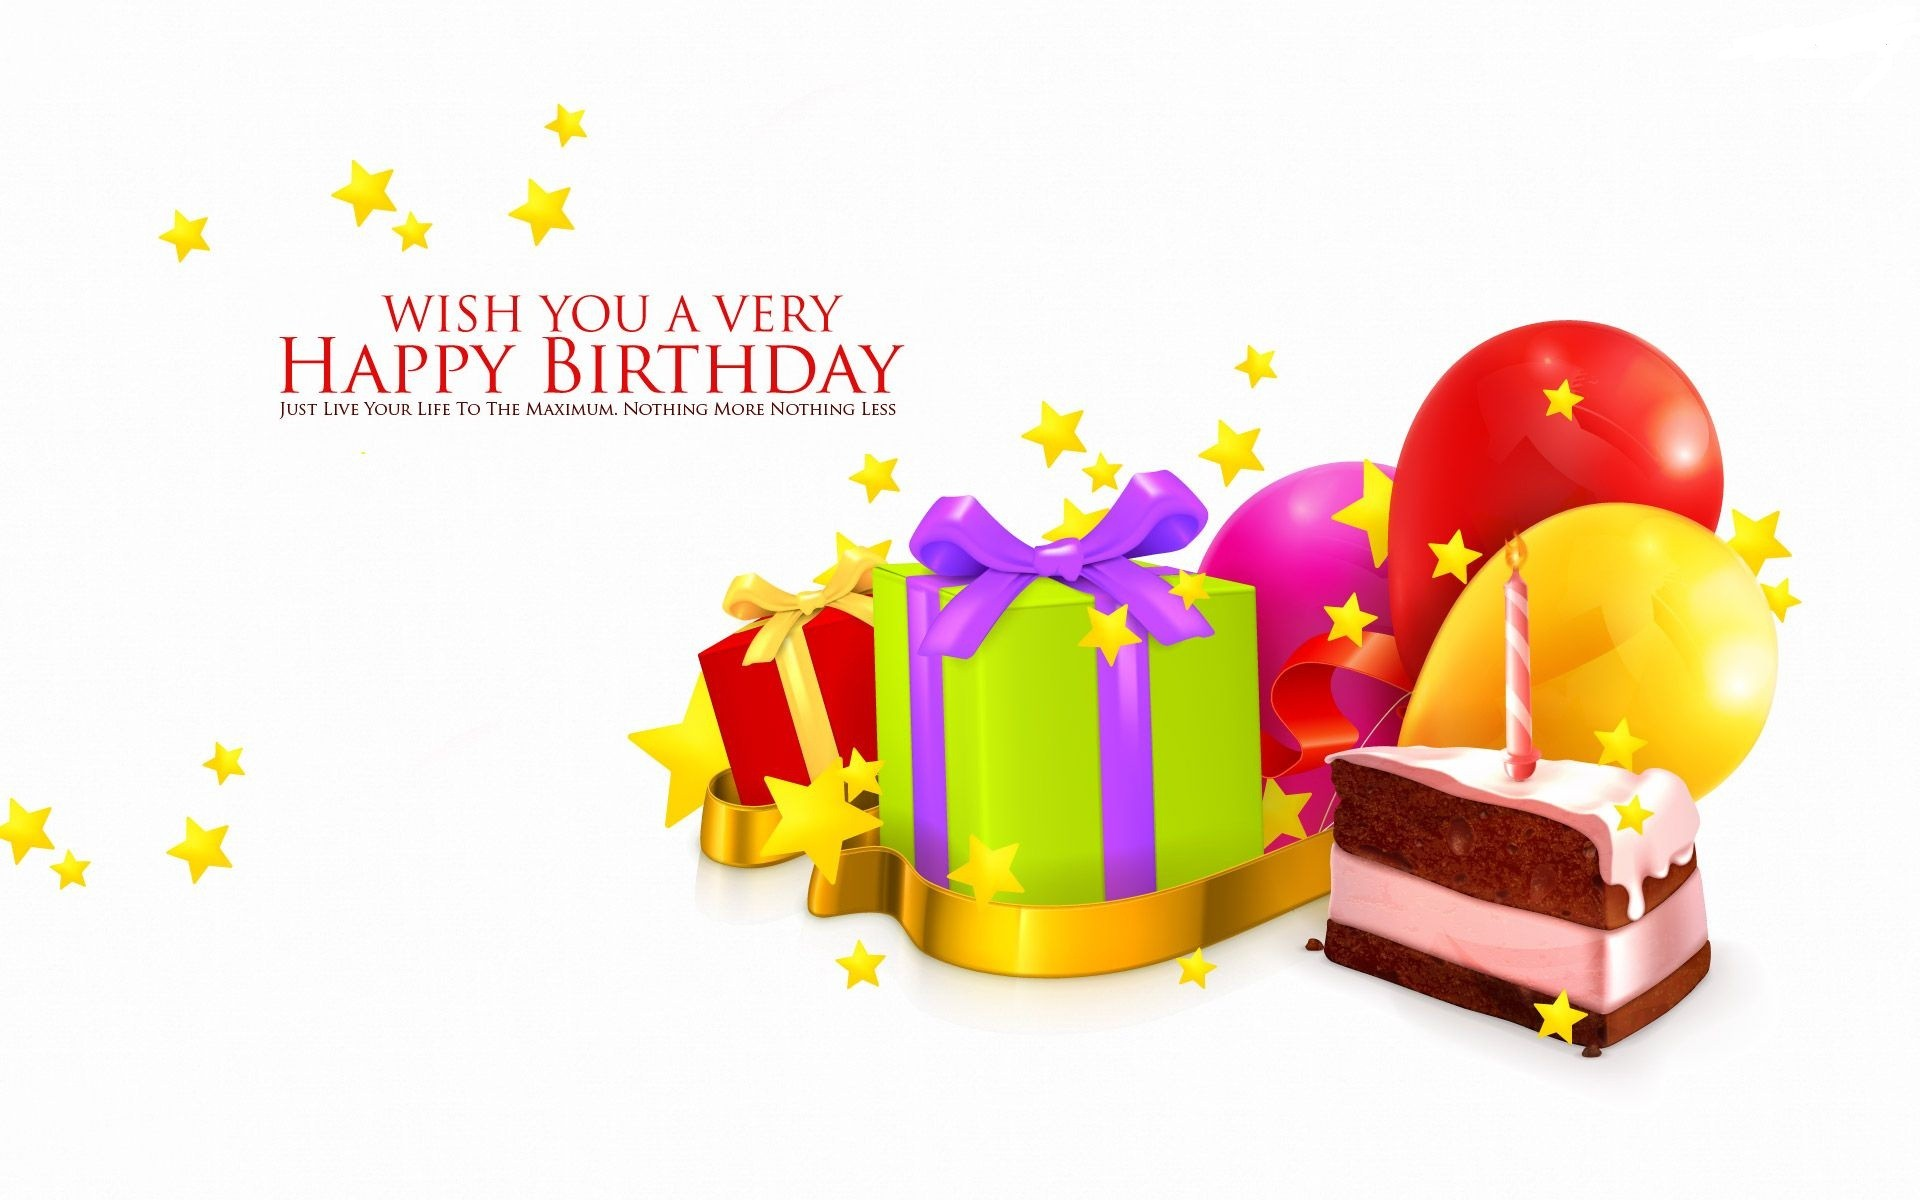 happy birthday hd images 2018 ; Birthday-Quotes-and-Wishes-Hd-Wallpapers-4